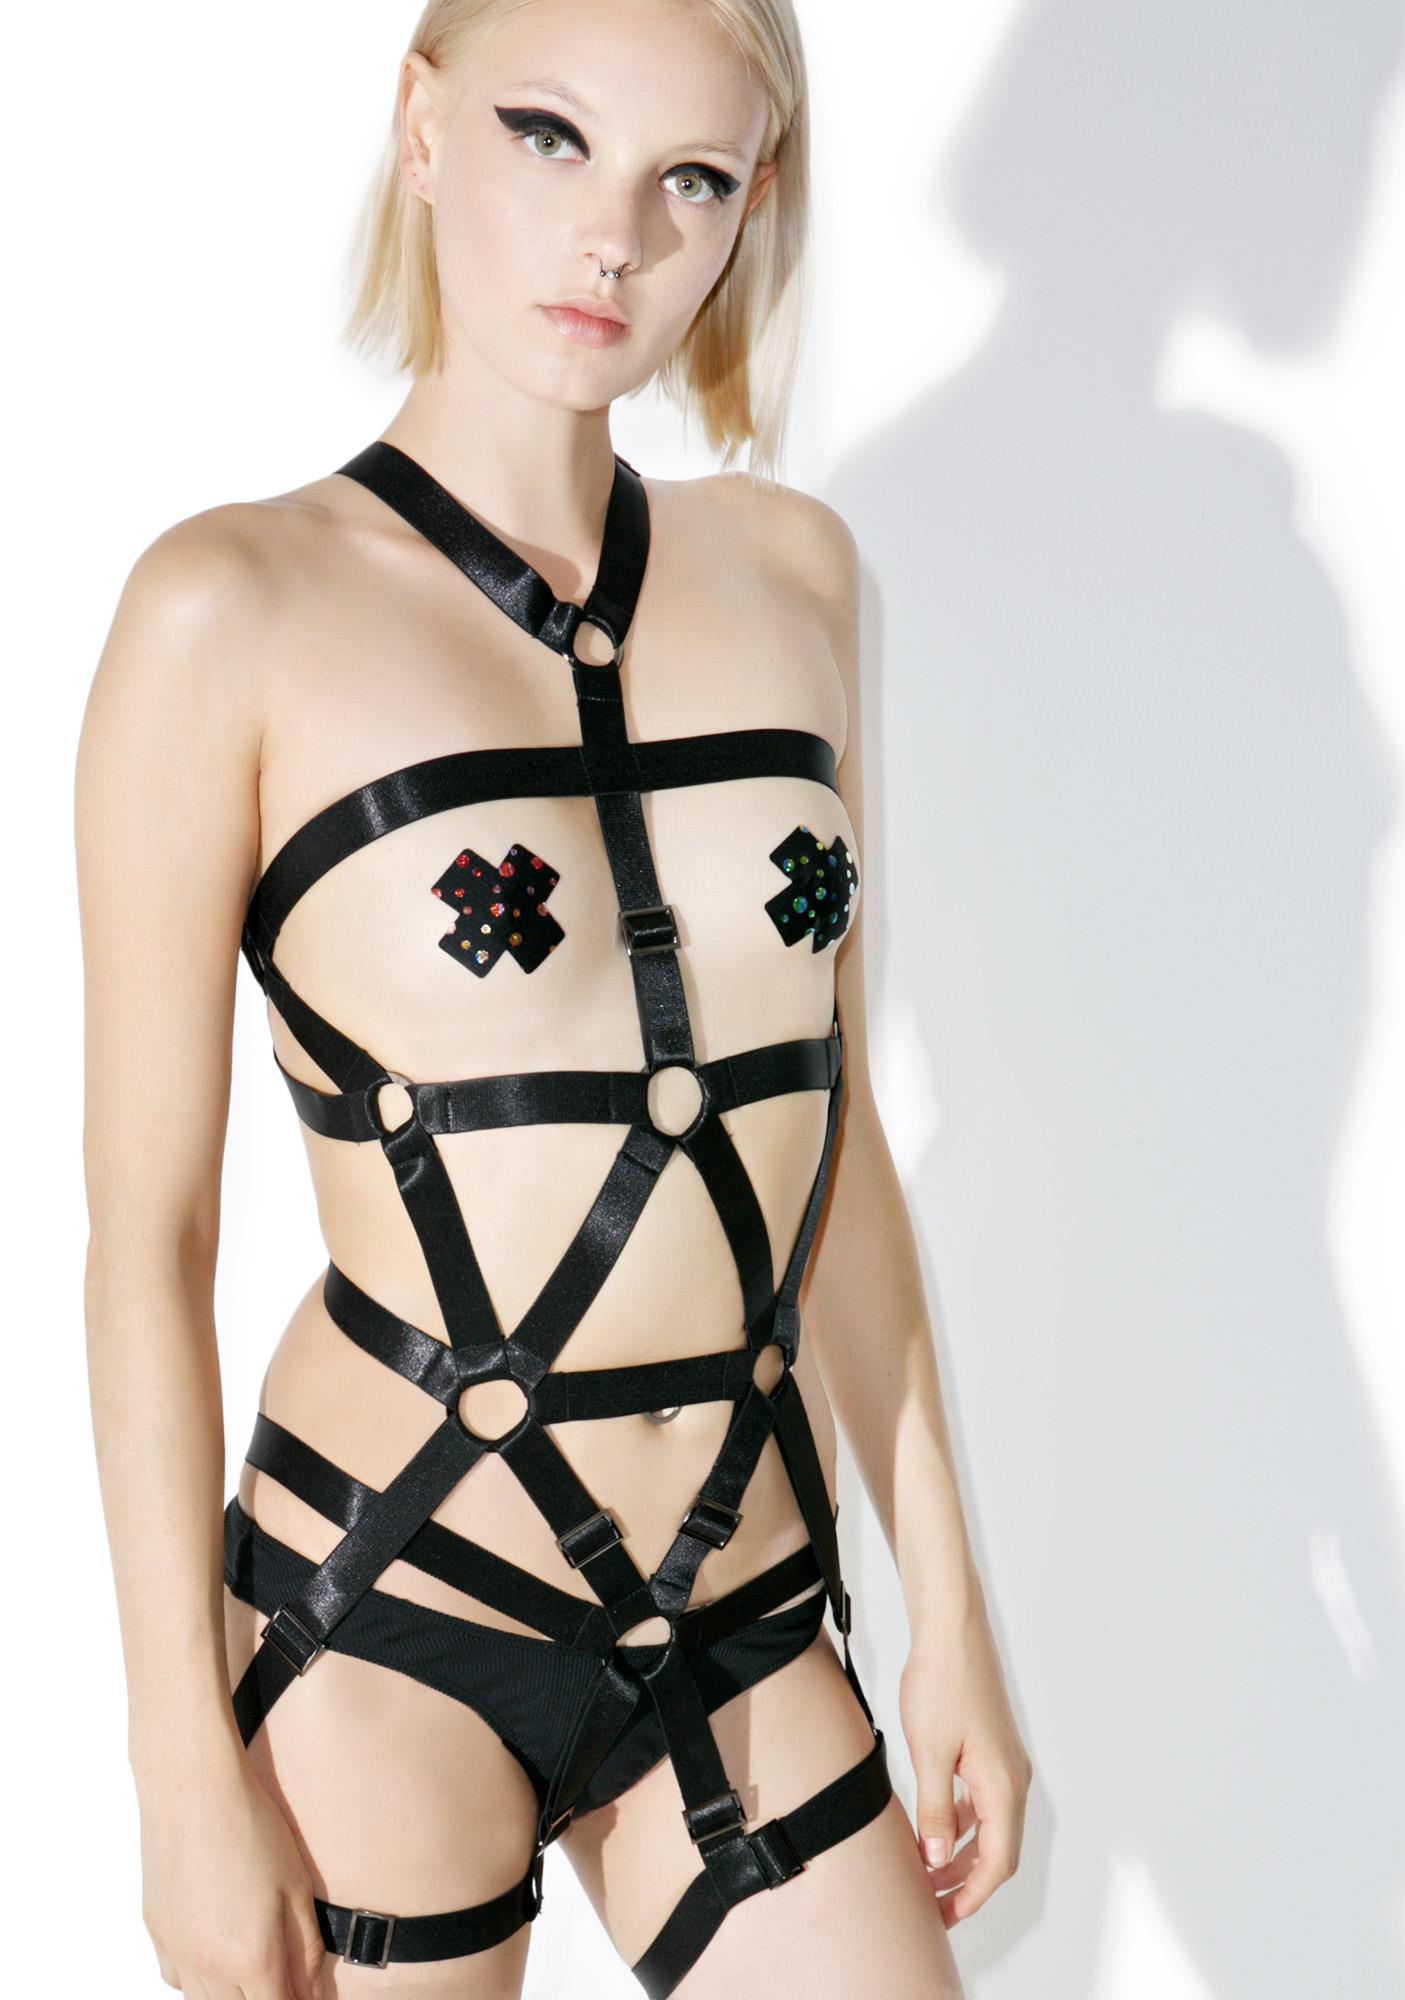 Teale Coco Blackmass Full Body Harness